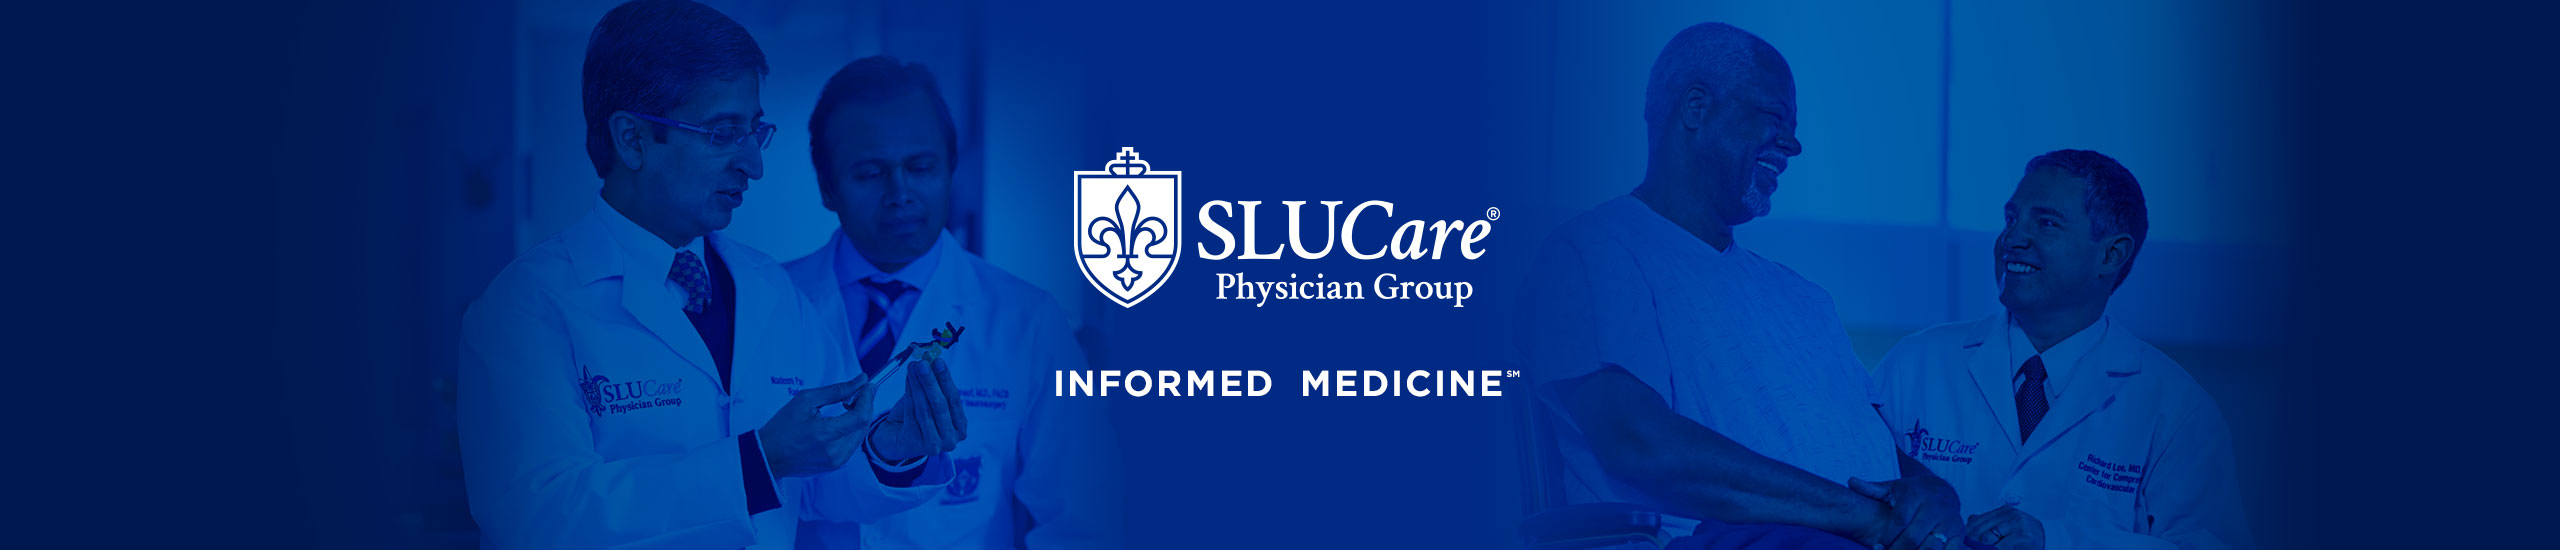 SLUCare Physician Group logo with doctors and patients talking